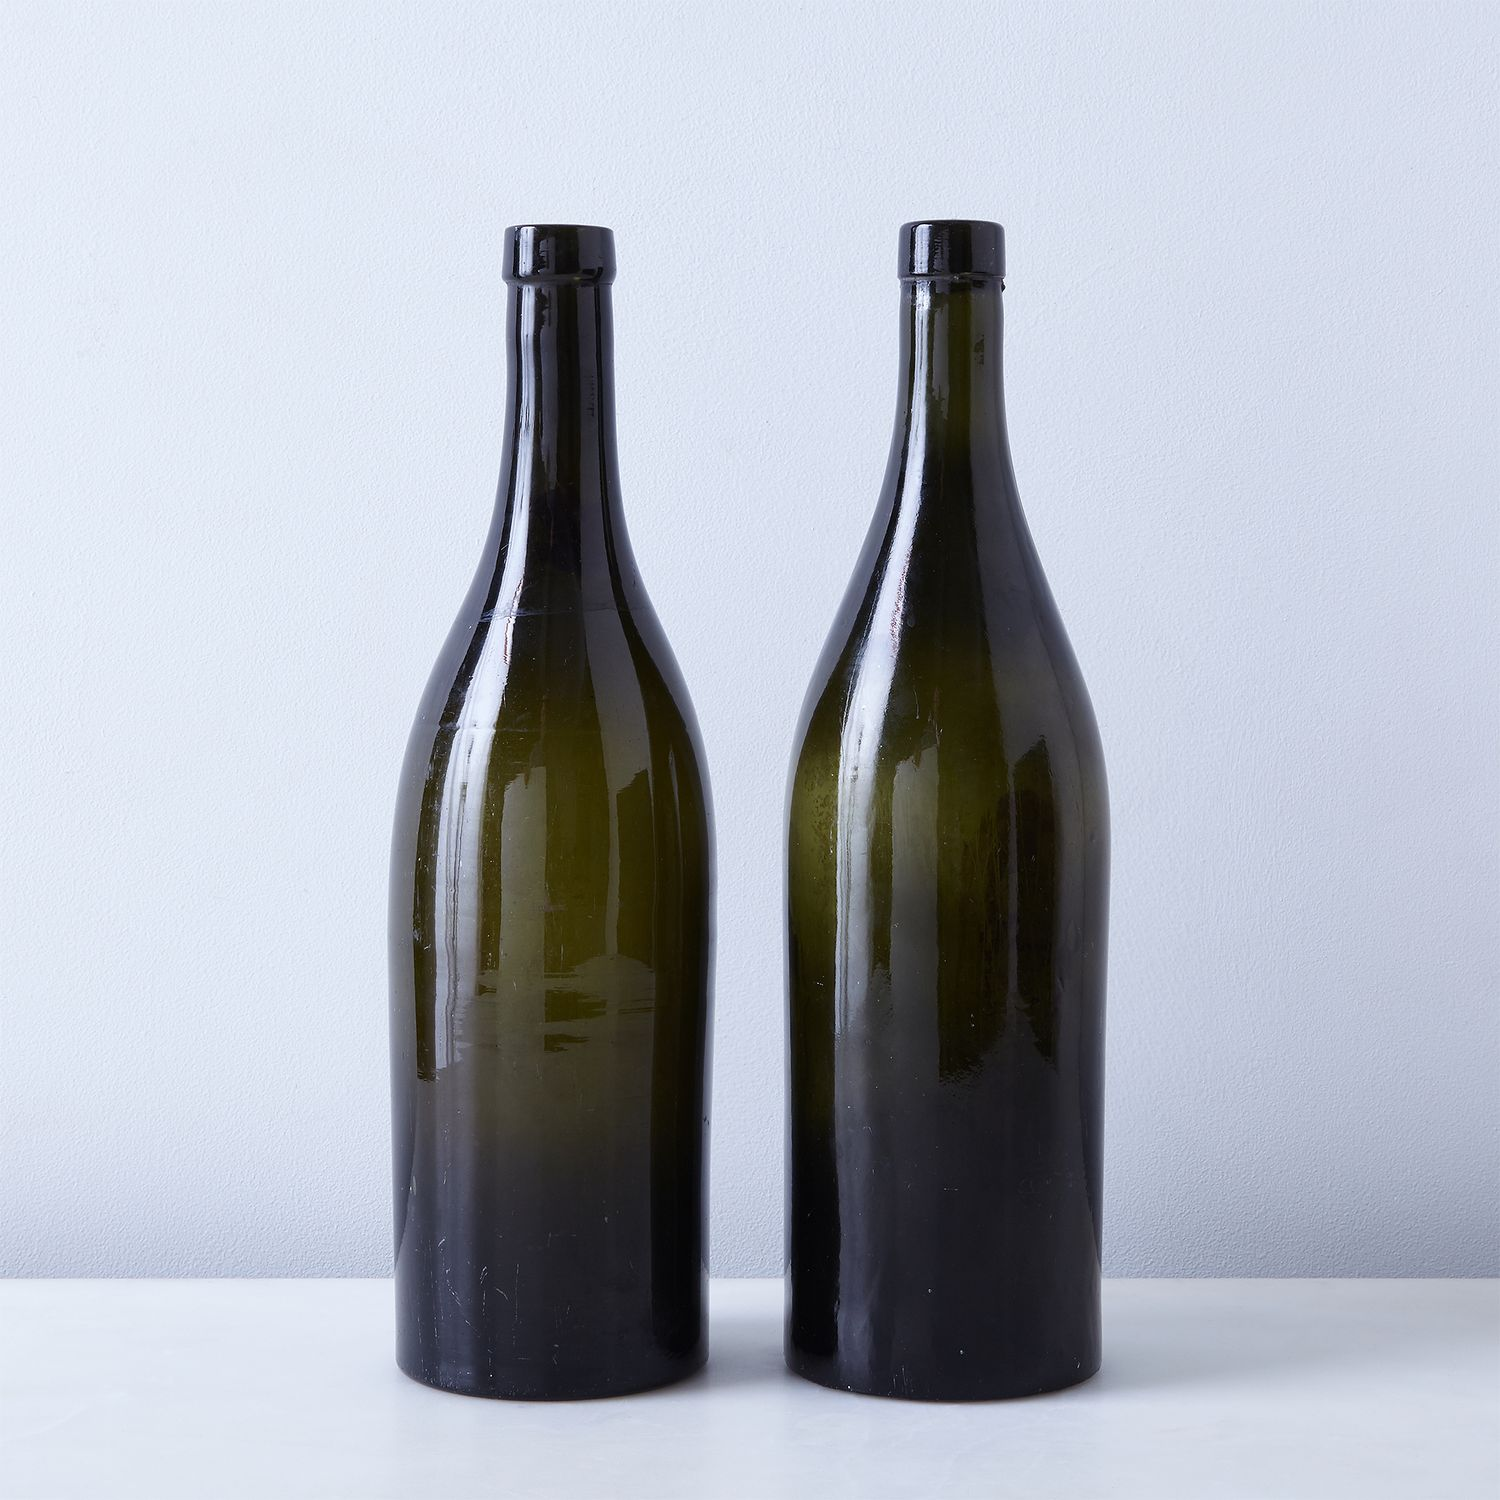 Vintage French Wine Bottles Set Of 2 On Food52